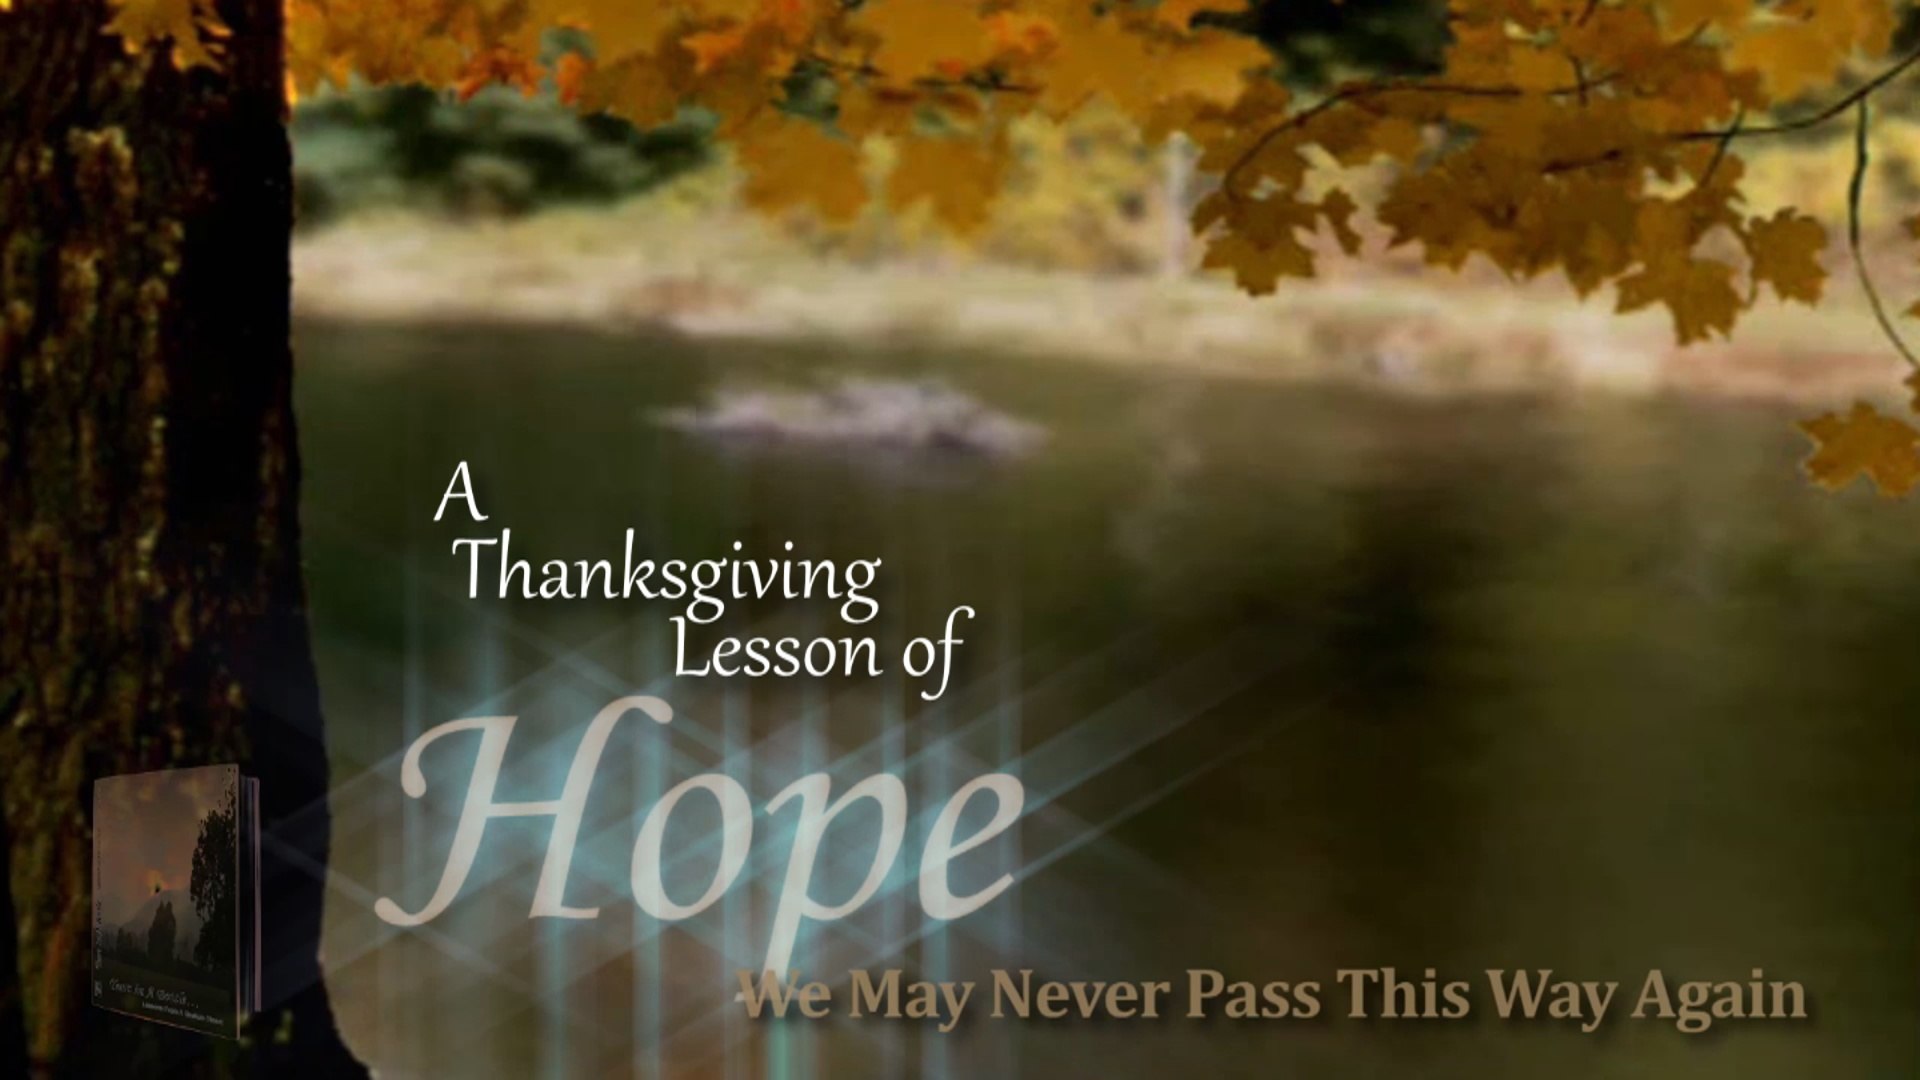 A THANKSGIVING LESSON OF HOPE